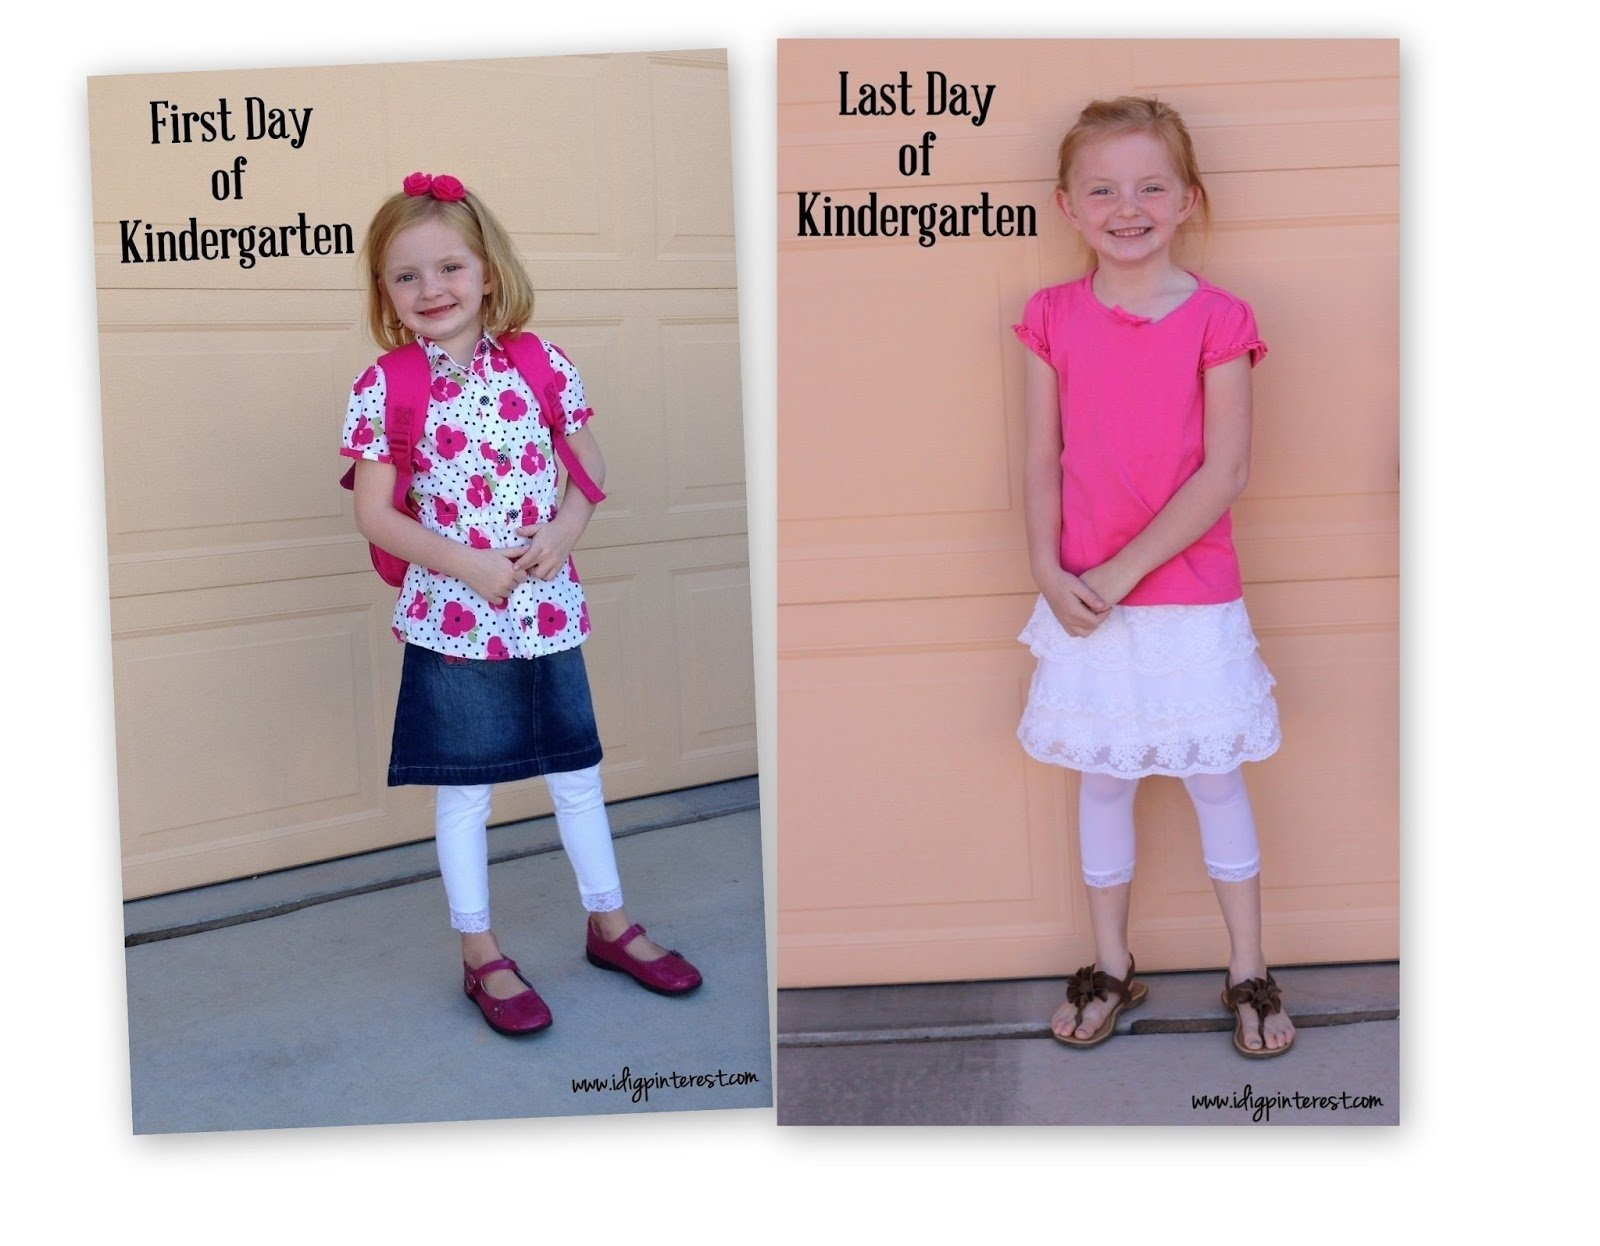 10 Spectacular First Day Of Kindergarten Picture Ideas fun first day of school traditions i dig pinterest 1